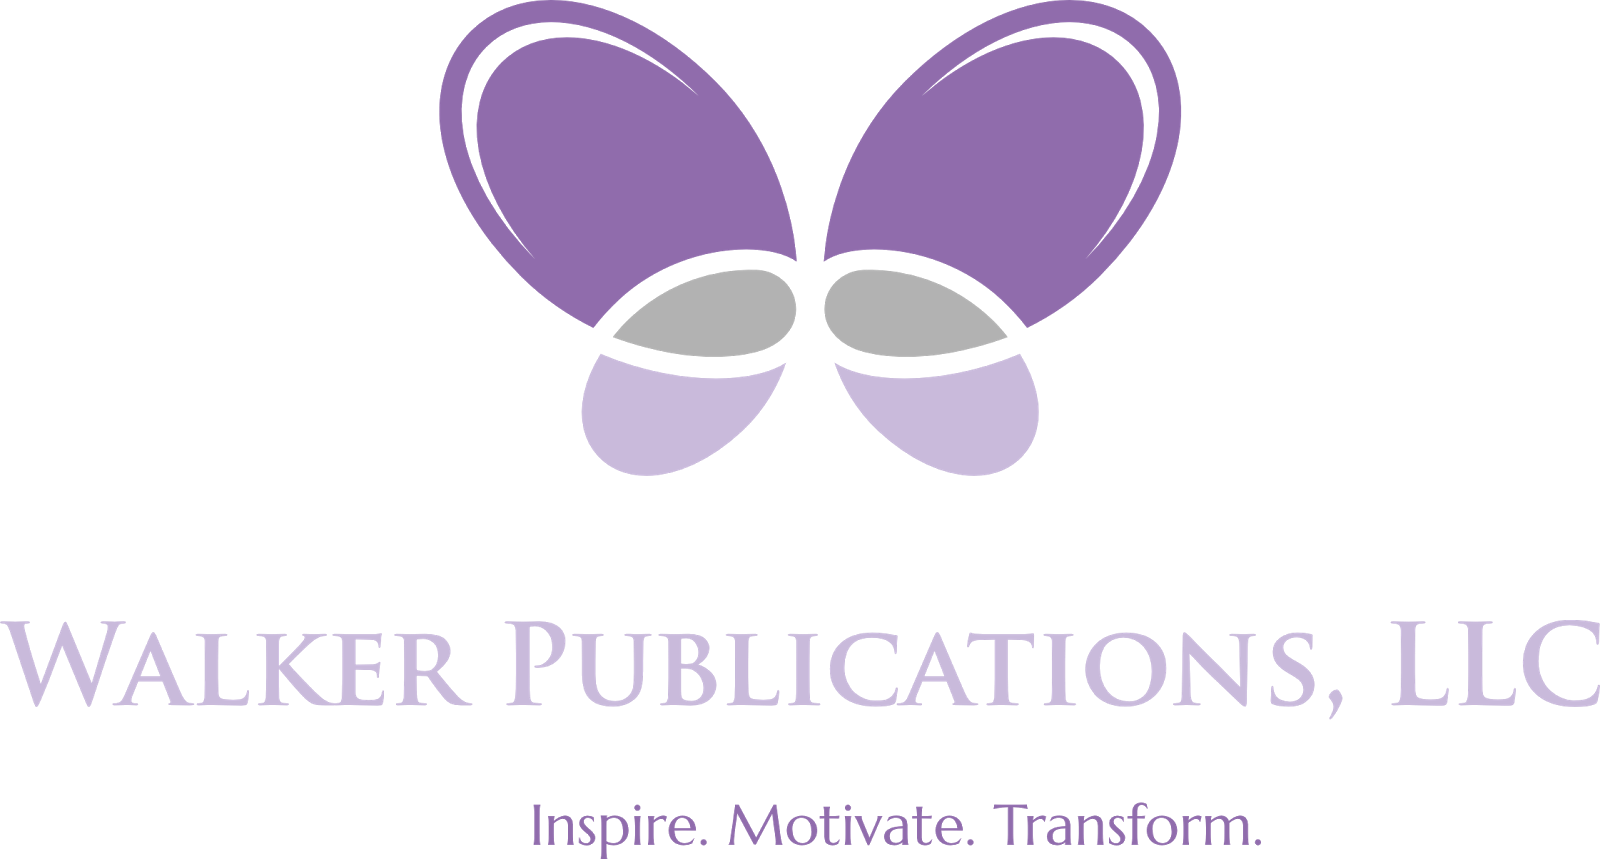 Walker Publications, LLC